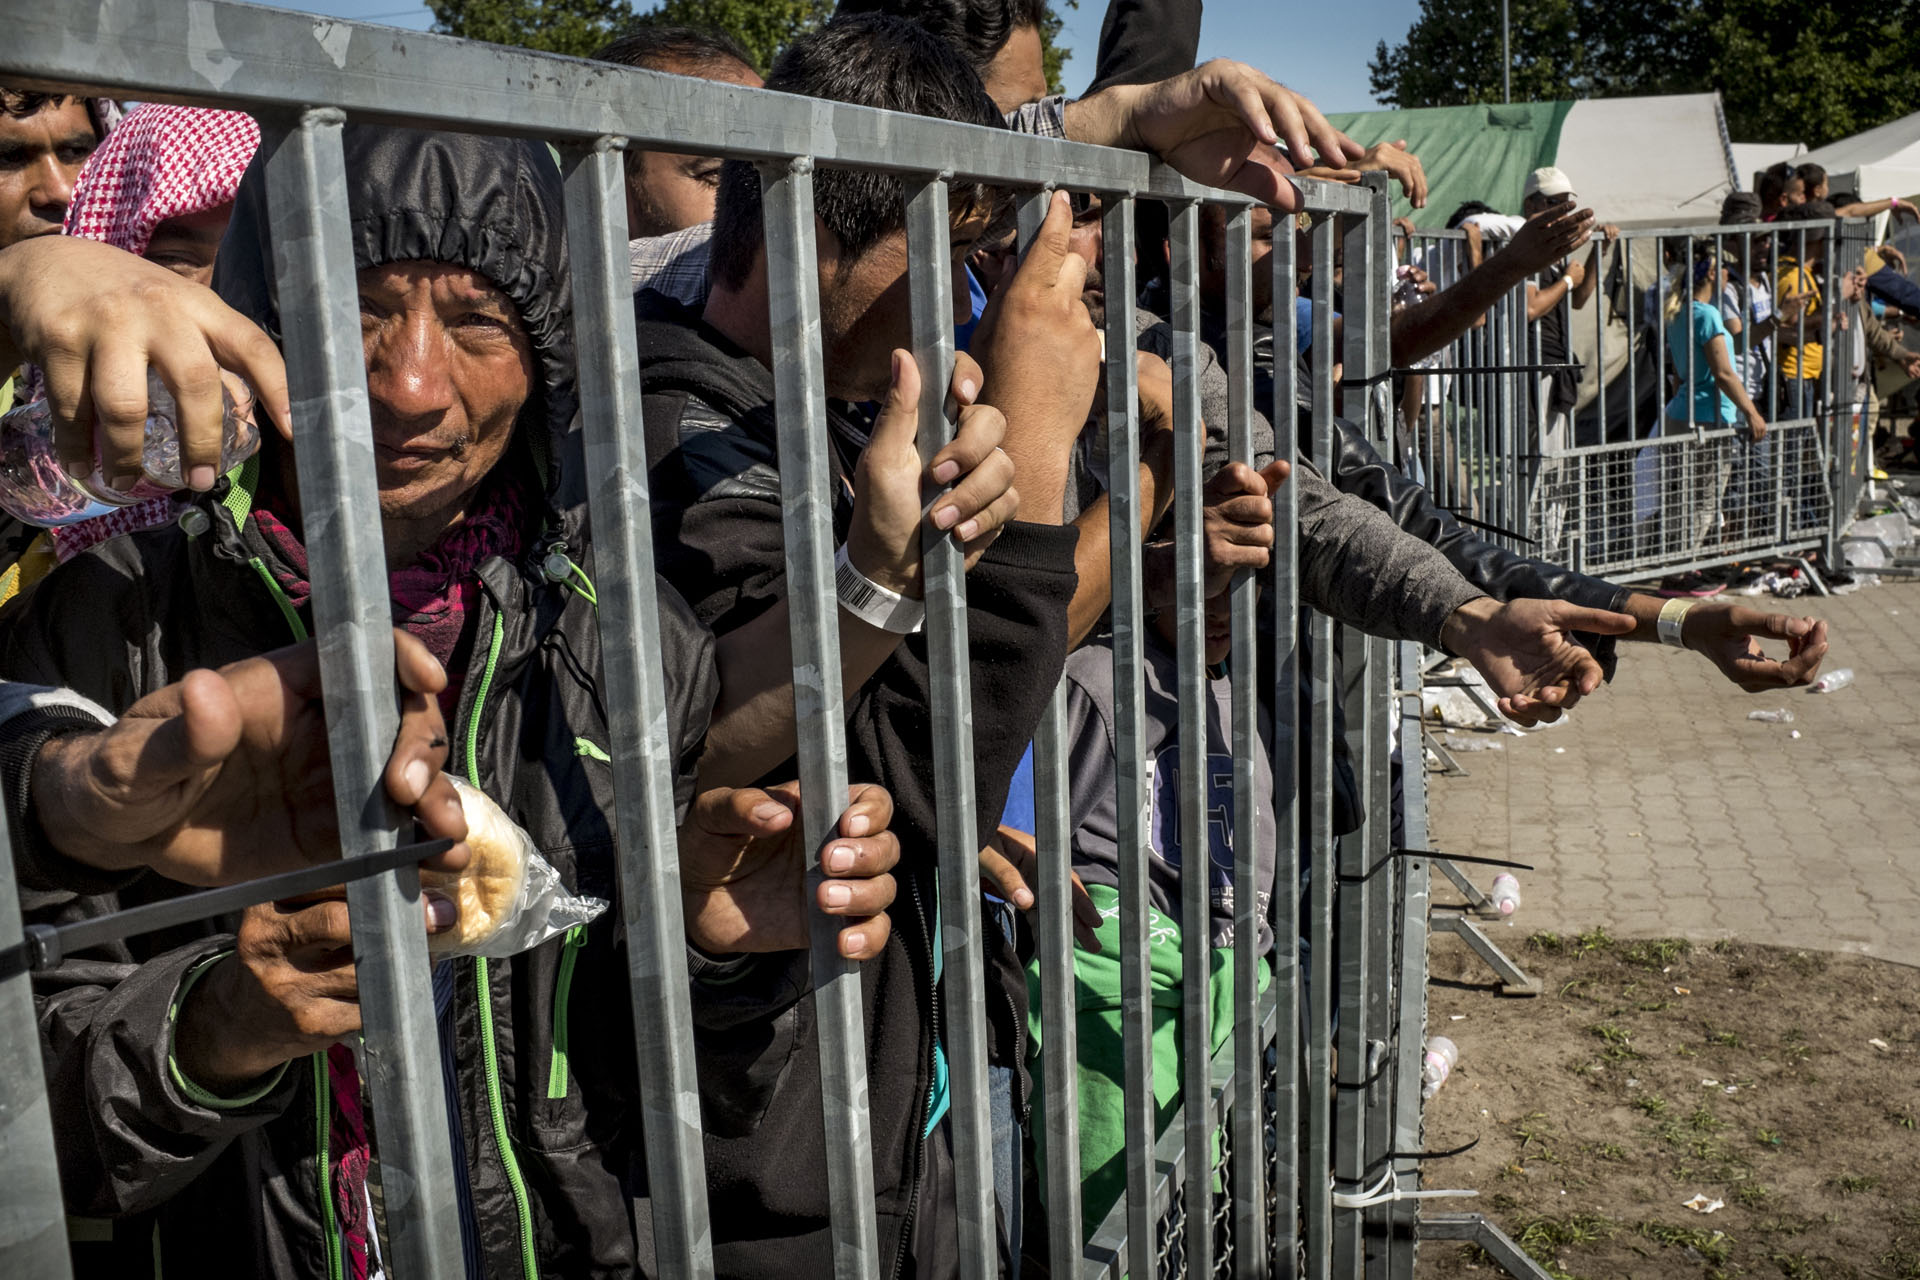 asylum seekers 8 More than a hundred asylum-seekers have been stranded at the crossings intake of them has slowed to about handful allowed entry a day at the roma and mcallen bridges, the families report.